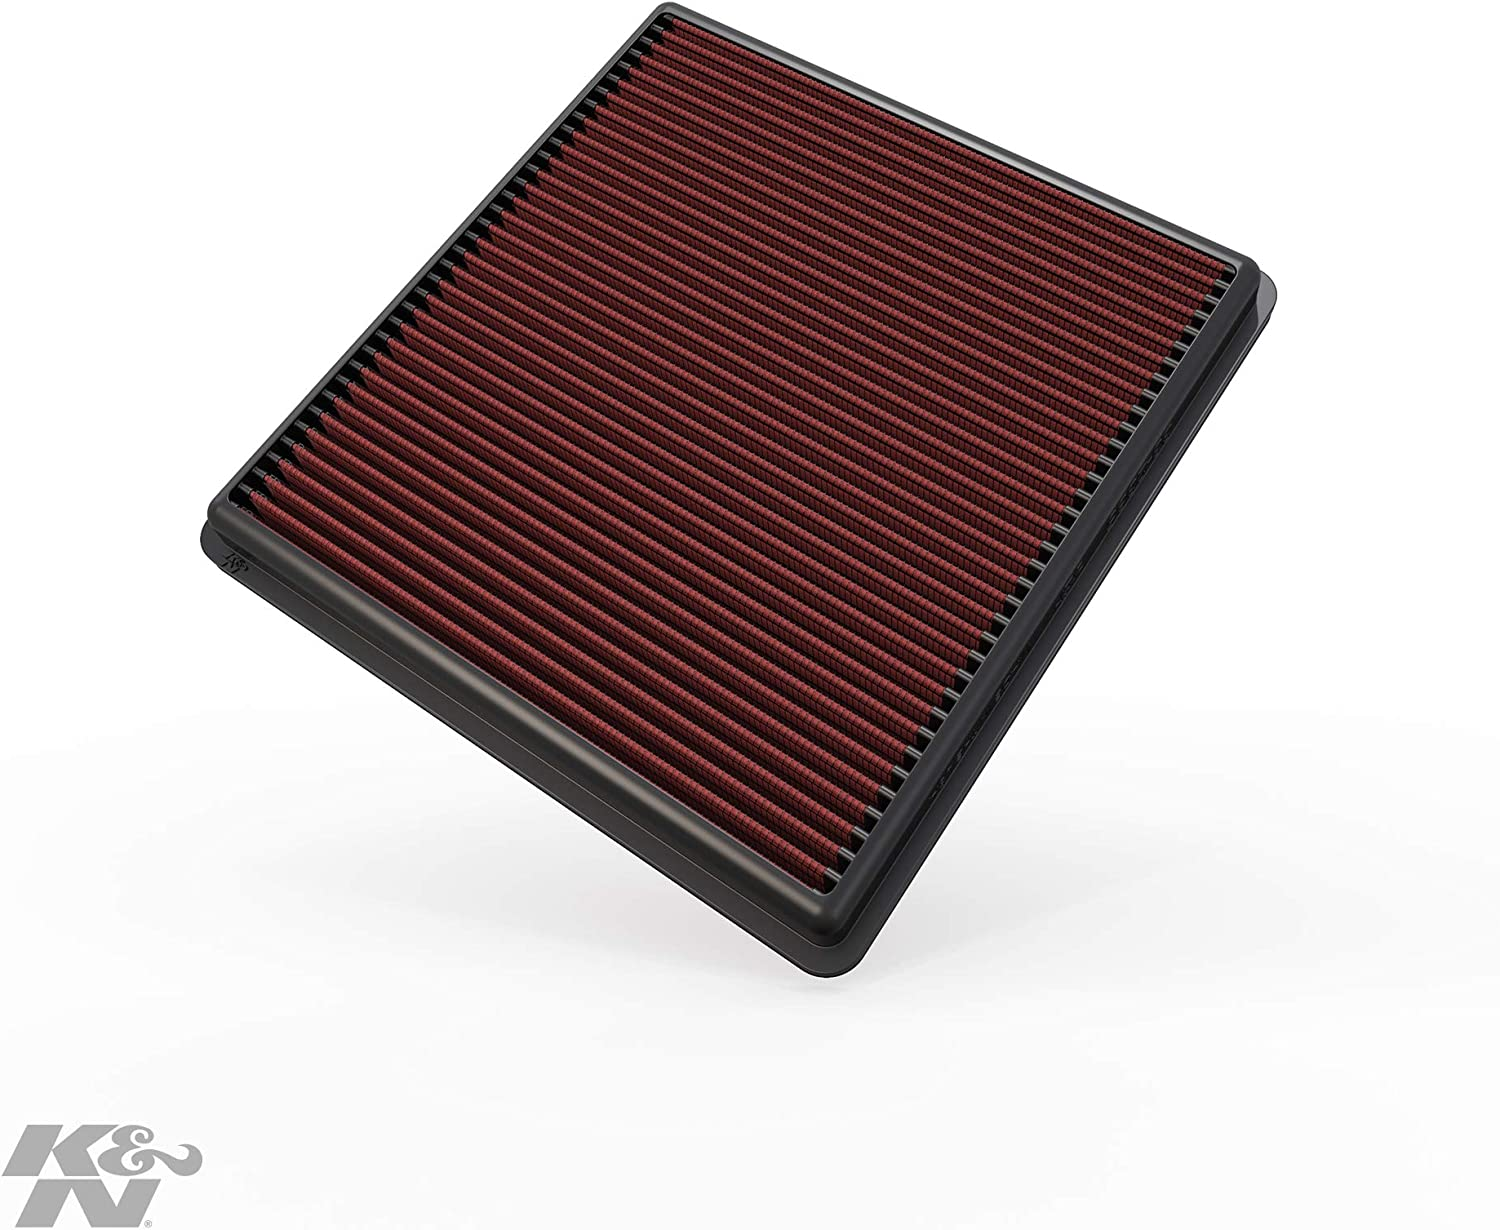 Engine Air Filter for Ford Expedition F-150 F-250 F-350 F-450 F-550 Navigator